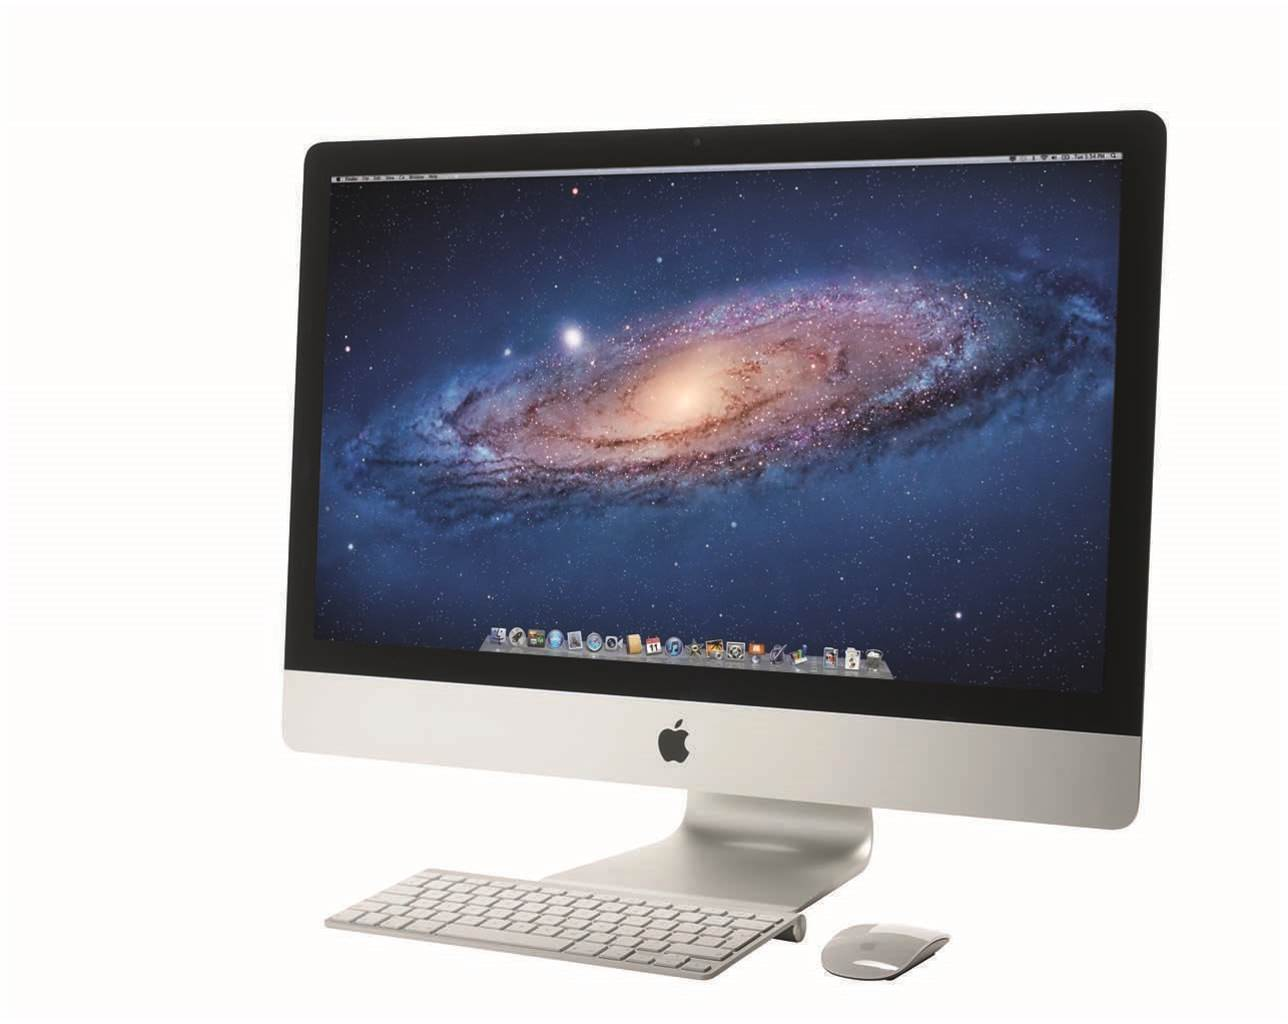 First look: new Apple iMac 27in